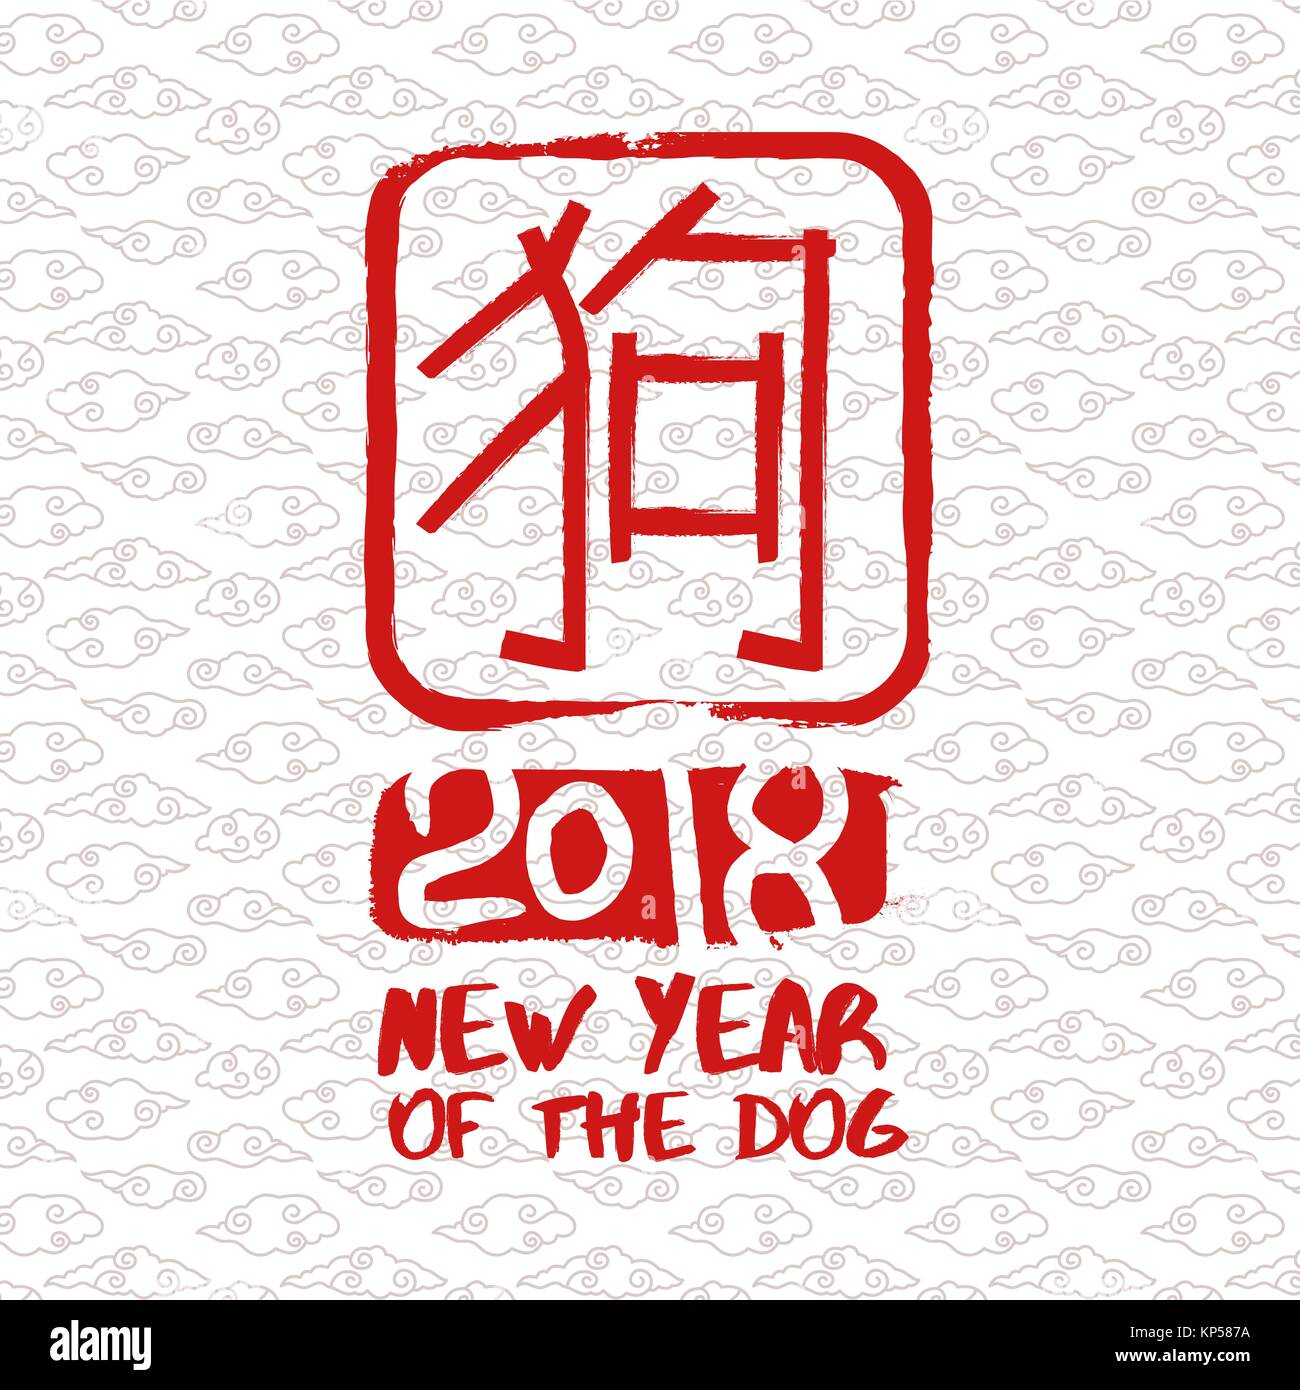 Happy chinese new year 2018 greeting card illustration happy chinese new year 2018 greeting card illustration traditional asian style stamp with calligraphy that means dog eps10 vector kristyandbryce Choice Image